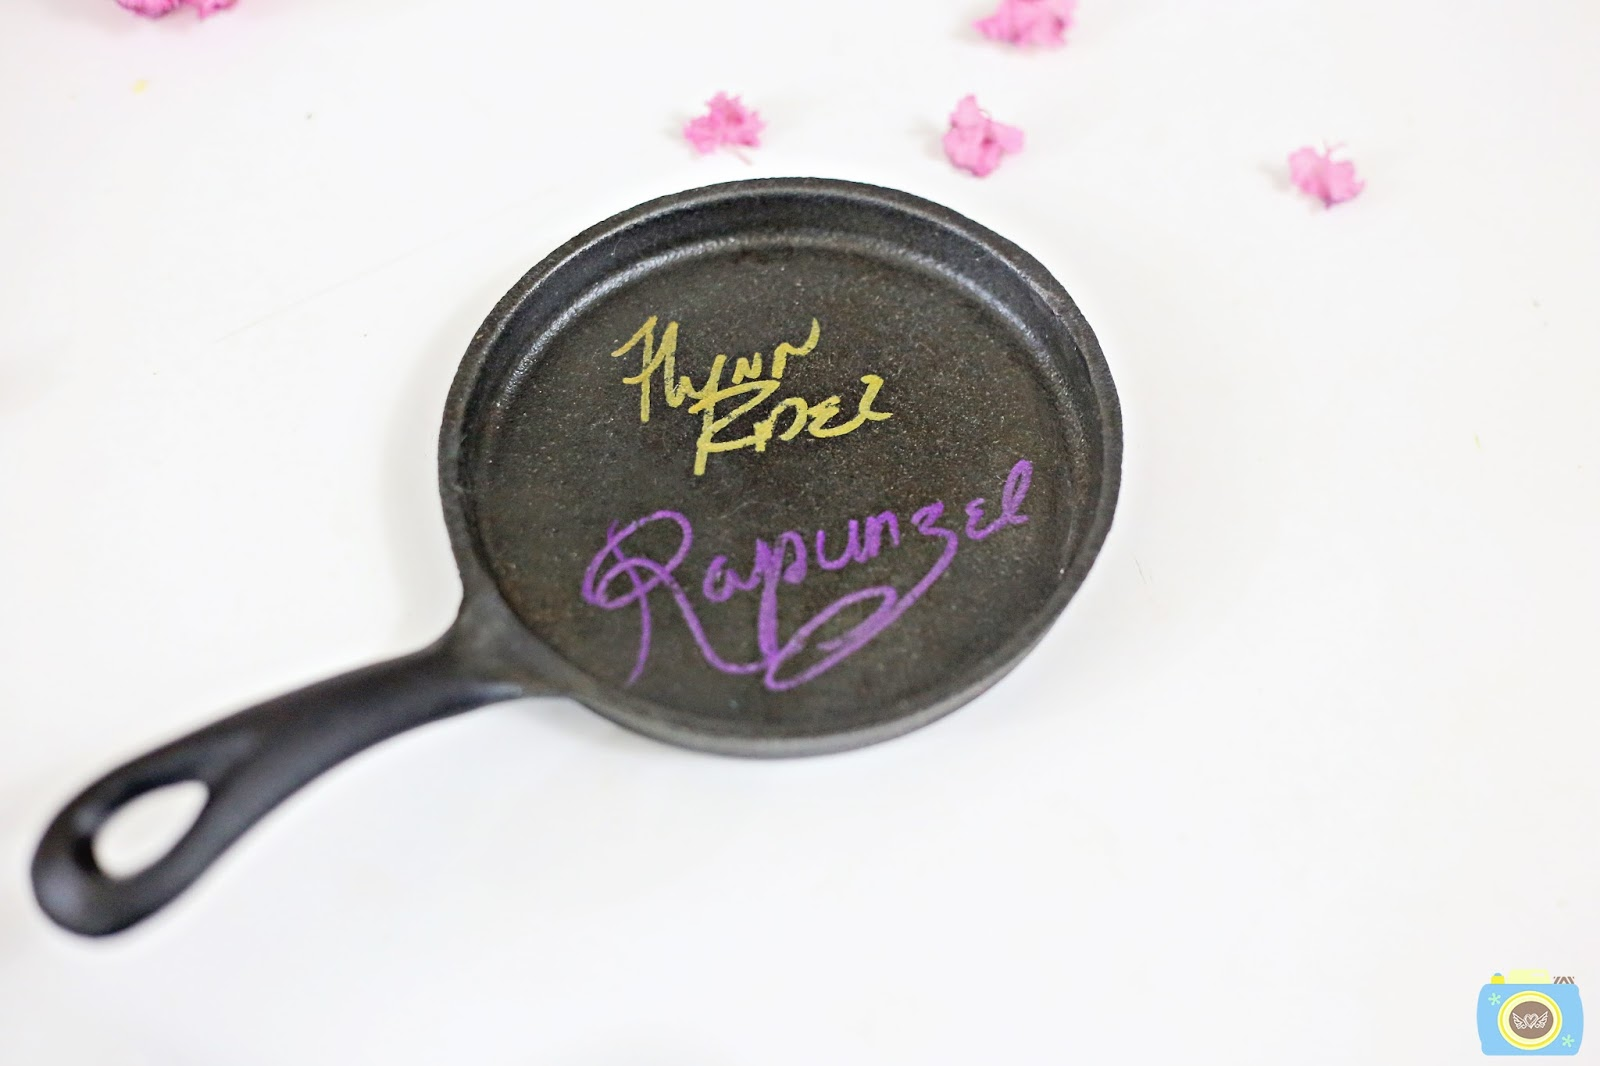 Tips for Getting Rapunzel's Autograph on a Frying Pan